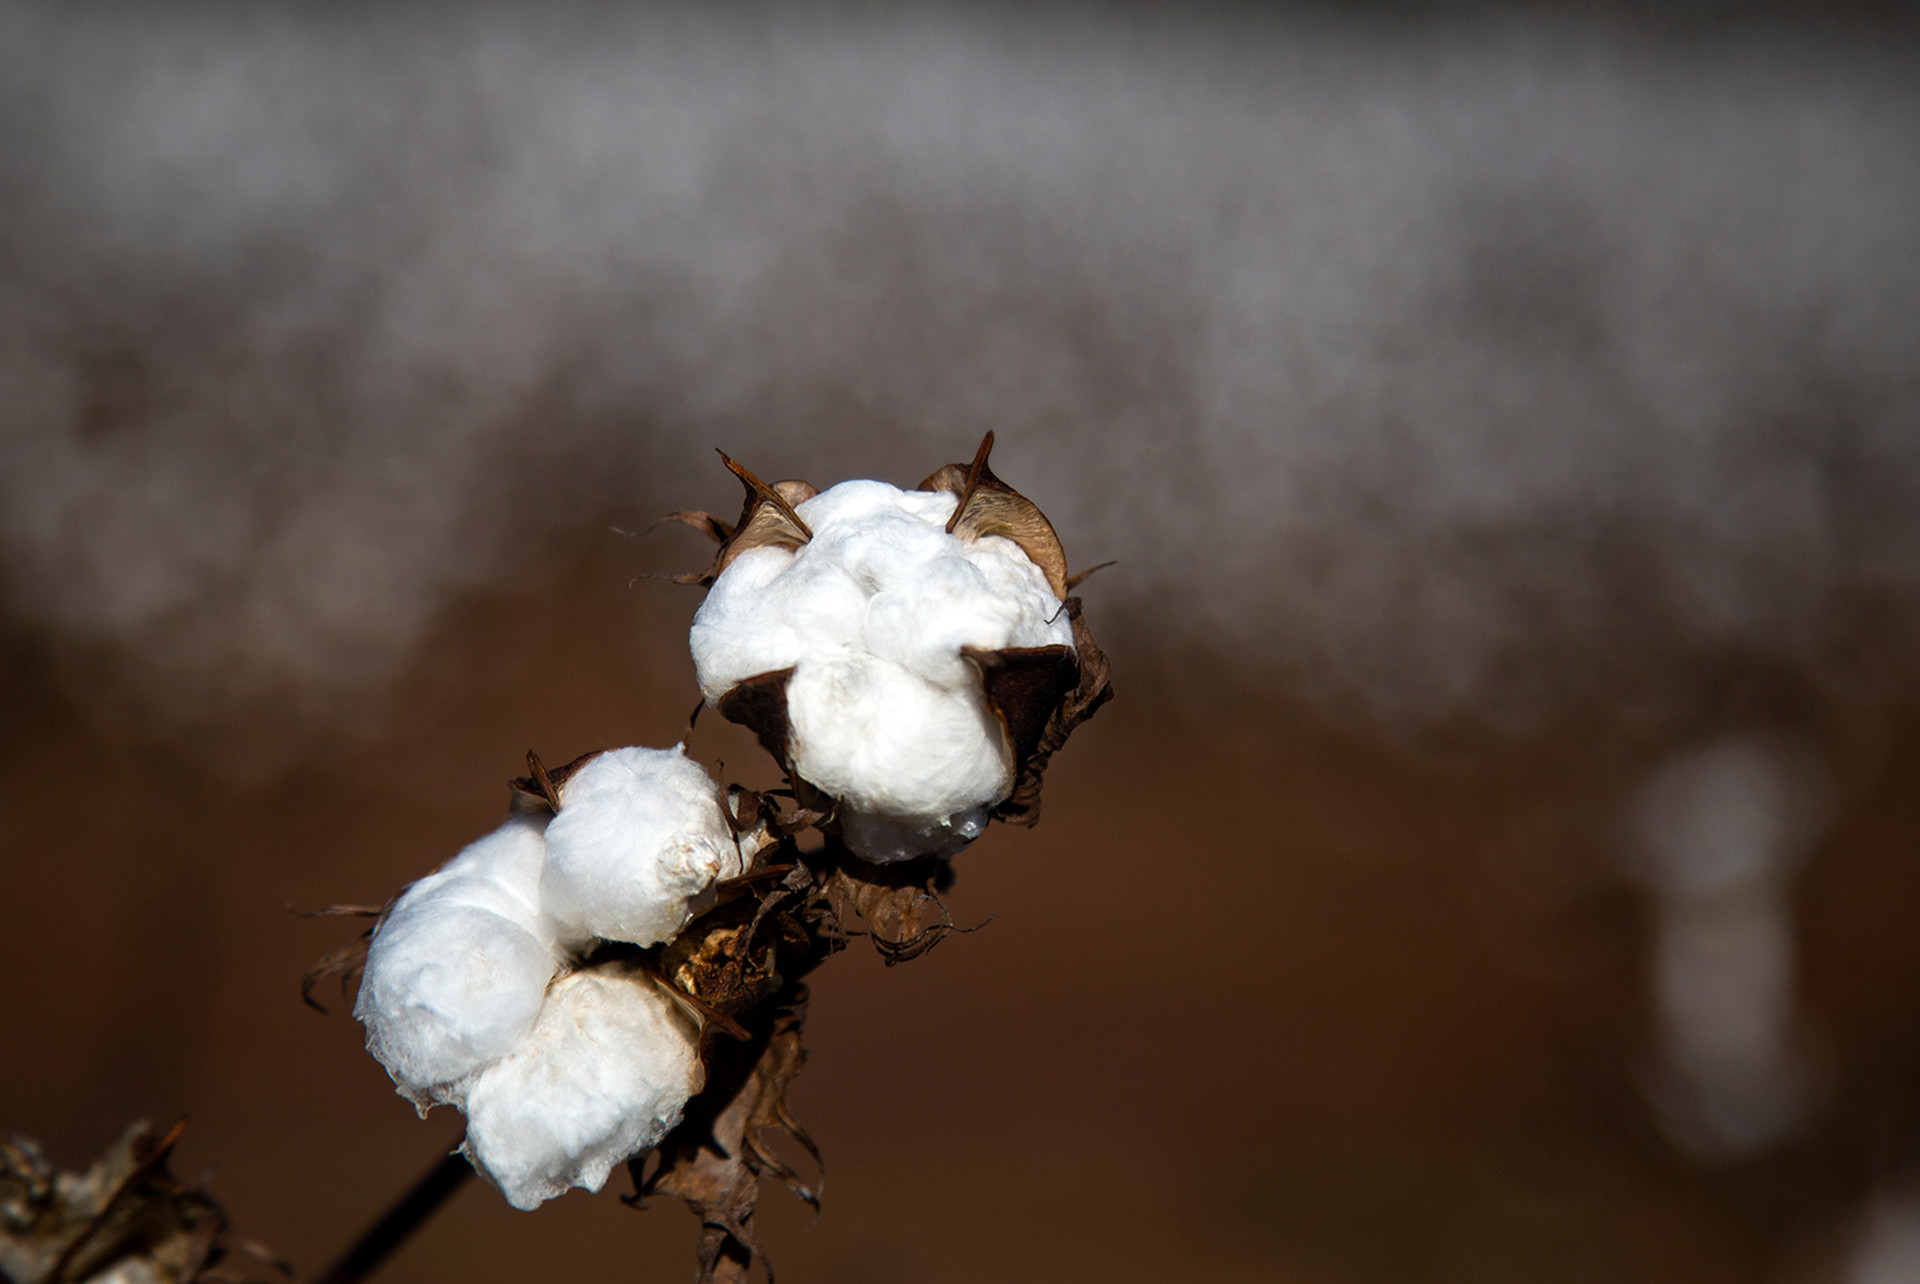 Cotton Stalk